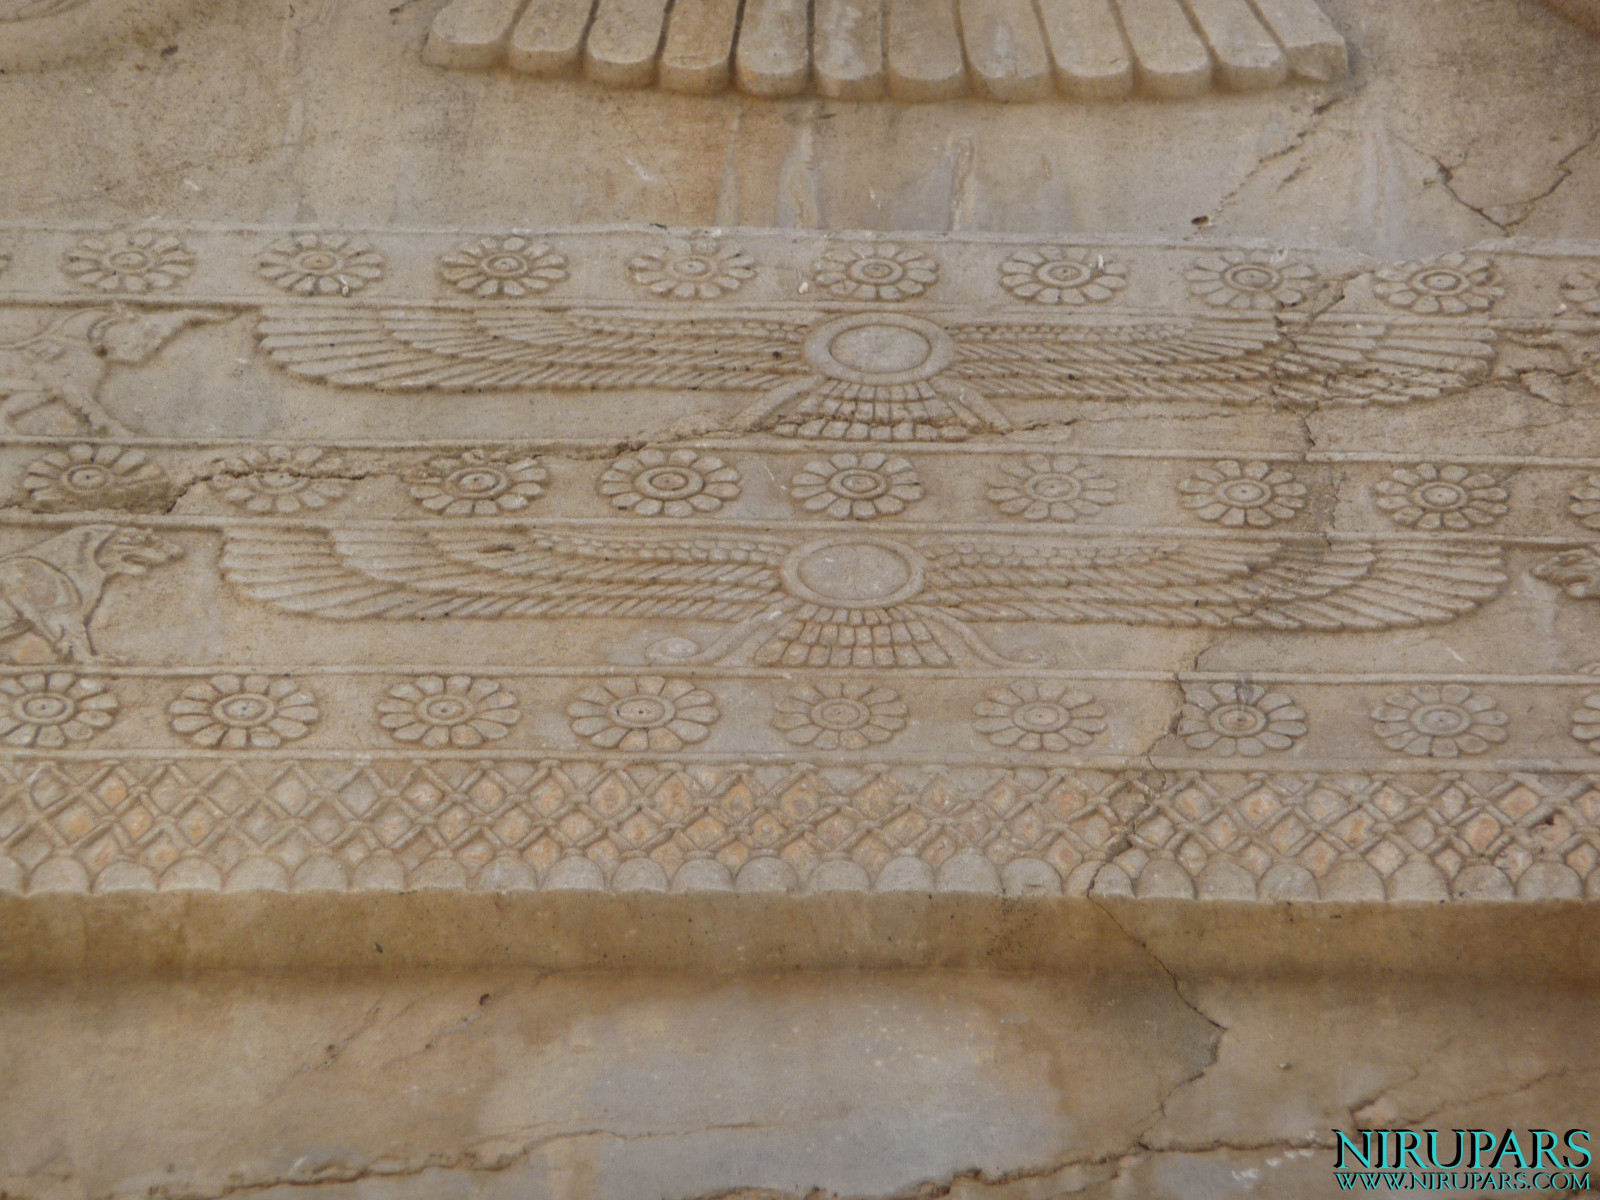 Persepolis - Hall of Hundred Columns - Relief Gate Frame - Faravahar